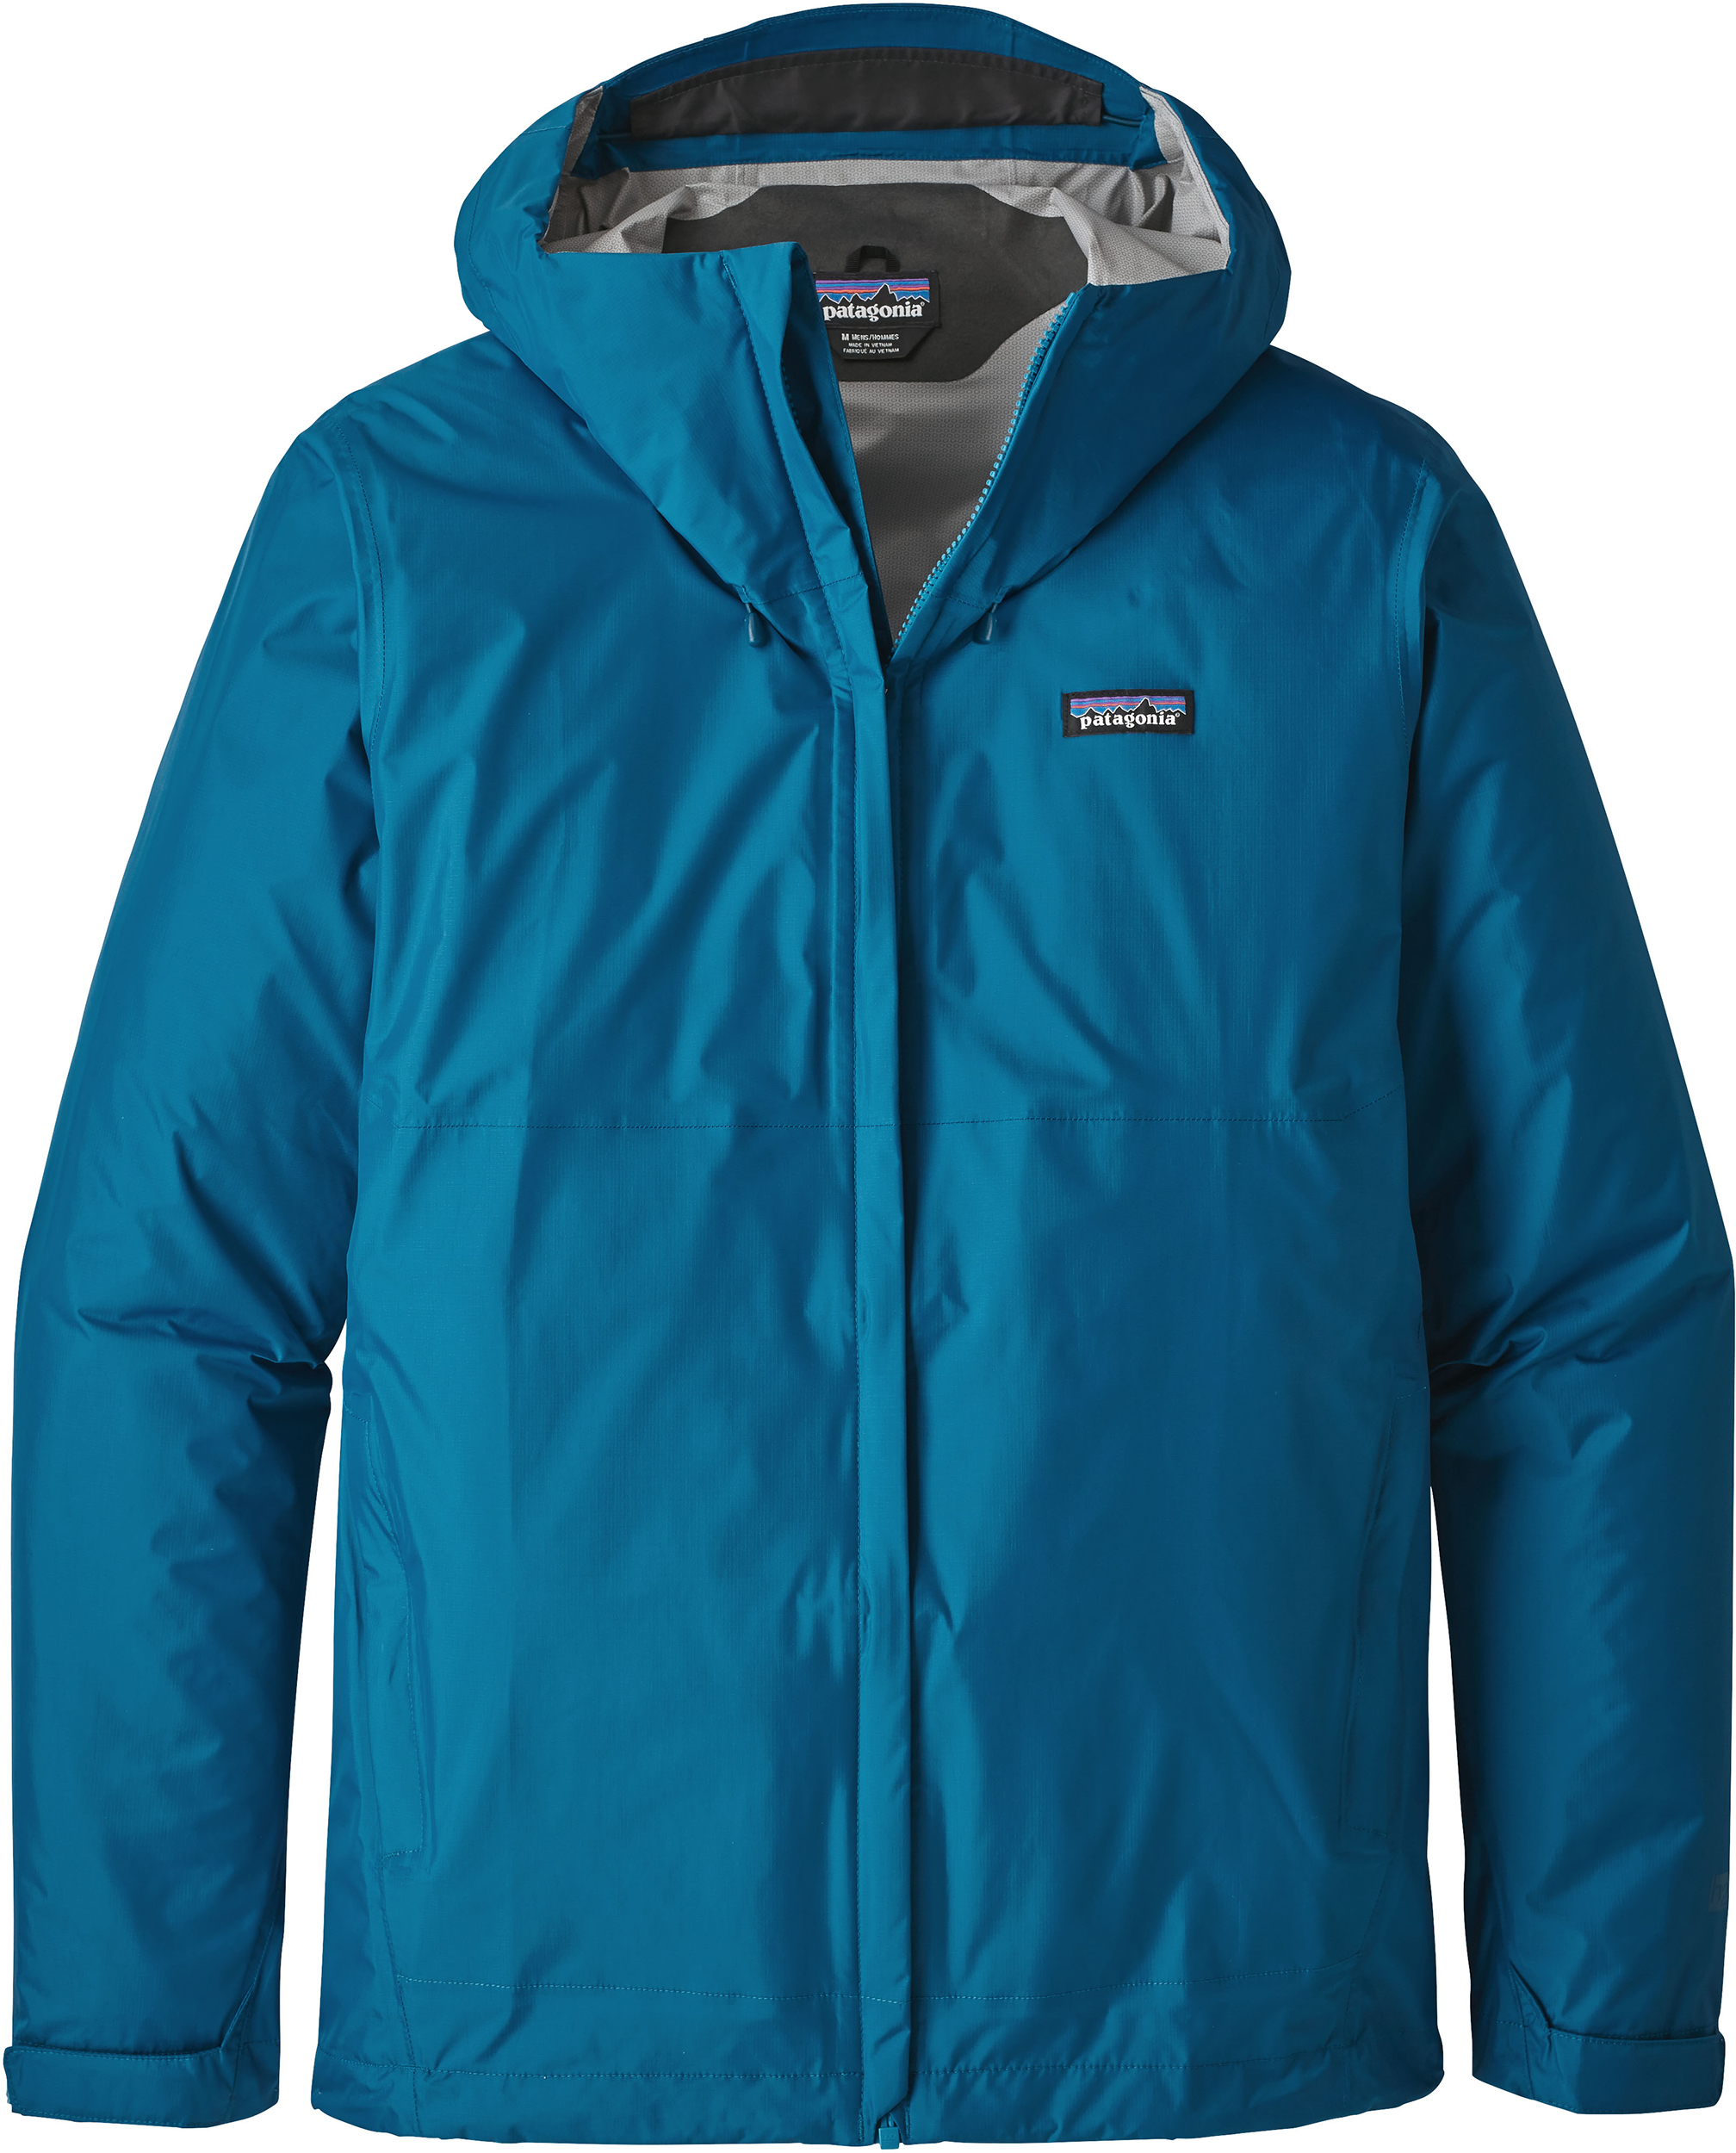 cea566ad669 Patagonia Torrentshell Jacket - Men s